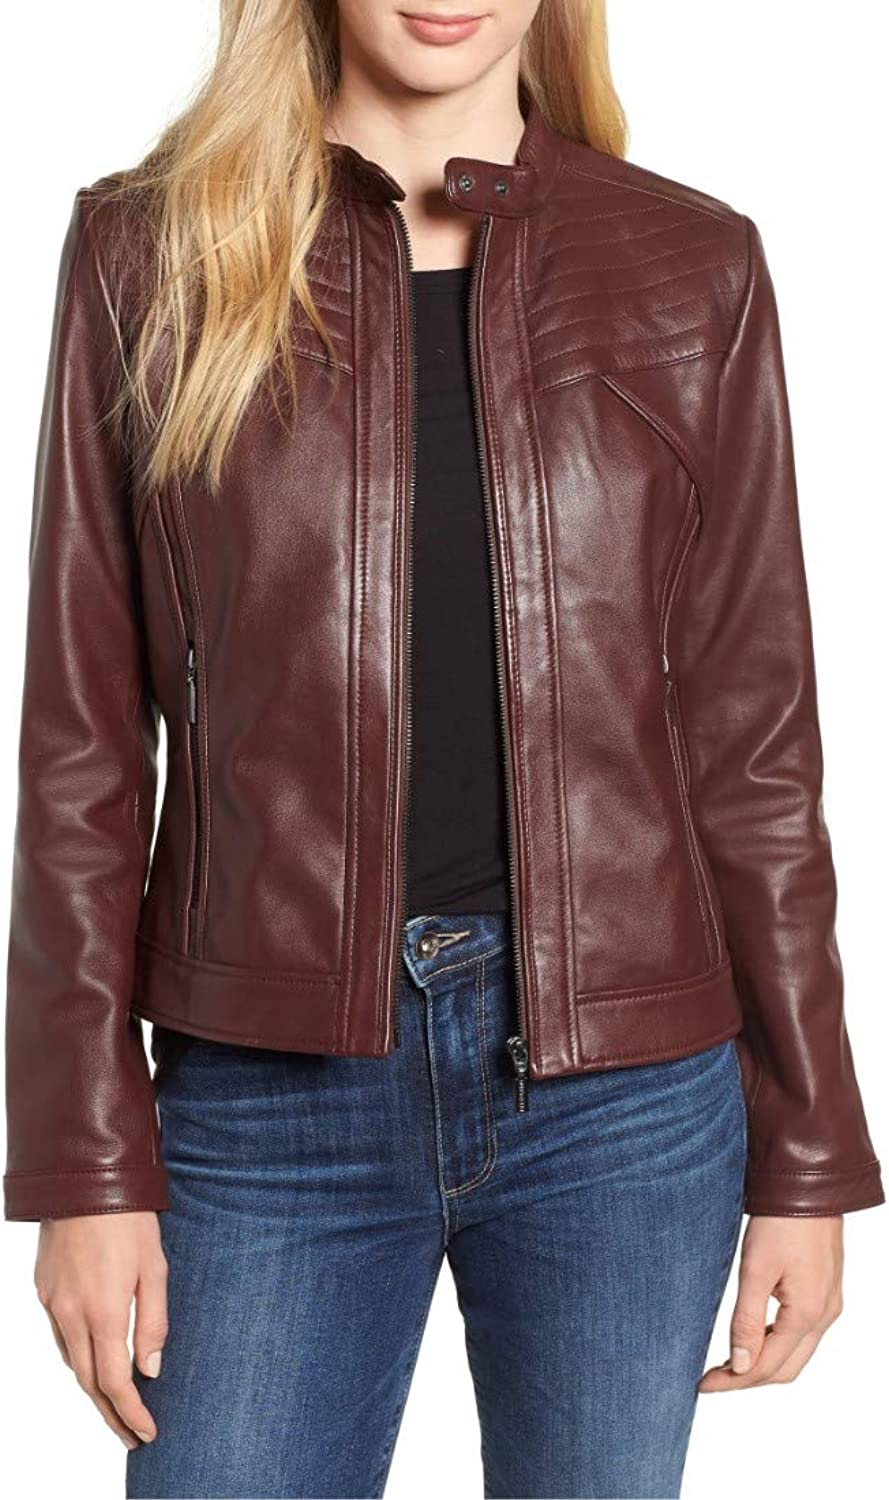 Dillo Leather Motorcycle Bomber Biker Maroon Real Leather Jacket for Women